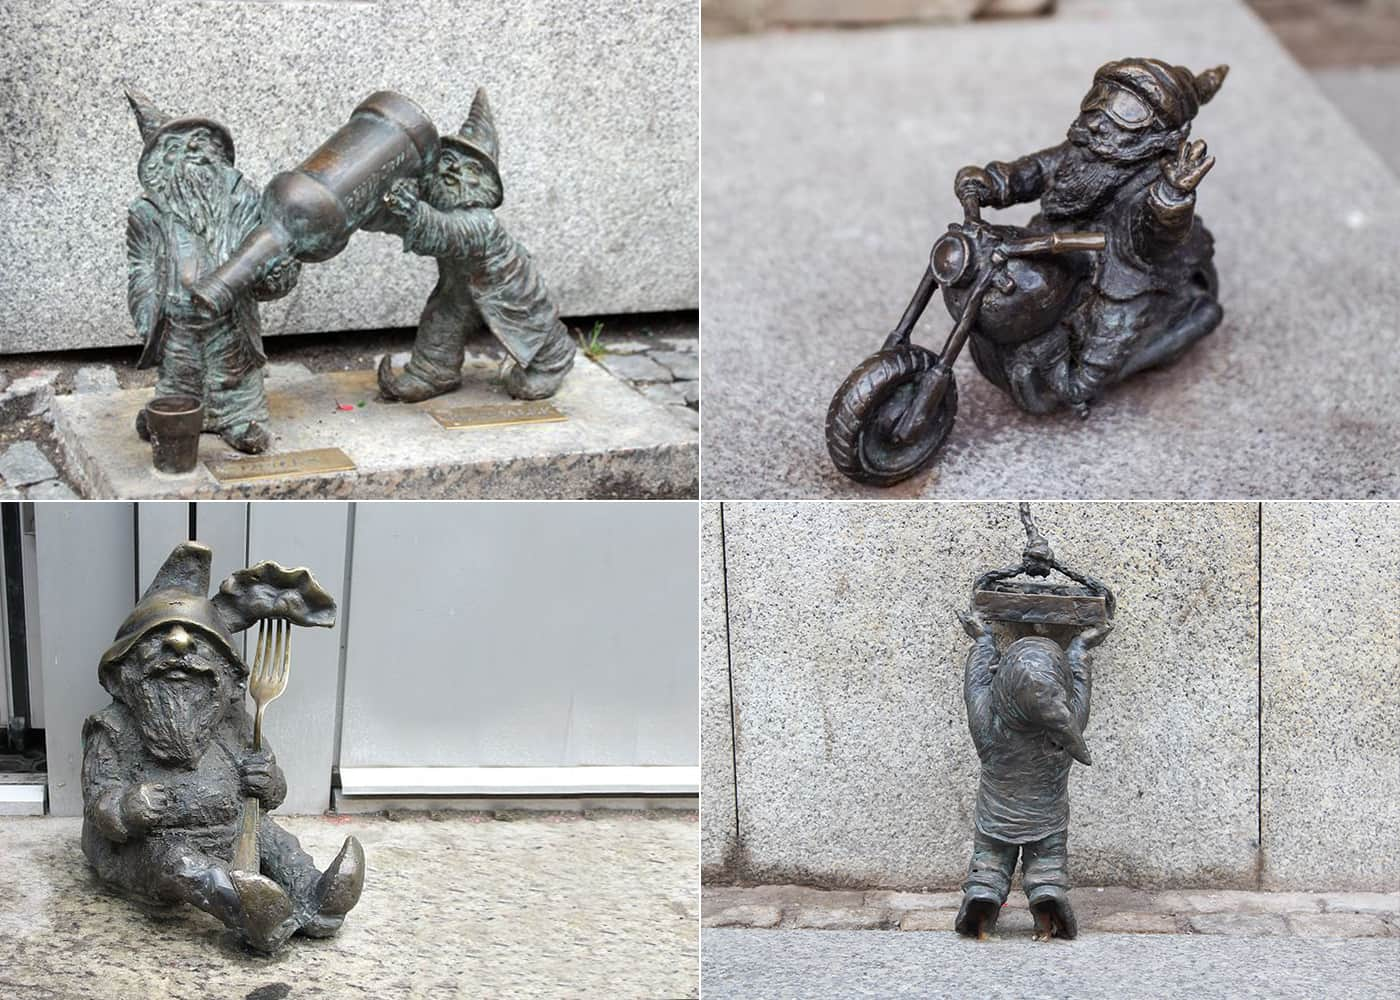 Four tiled images of the Wroclaw dwarfs